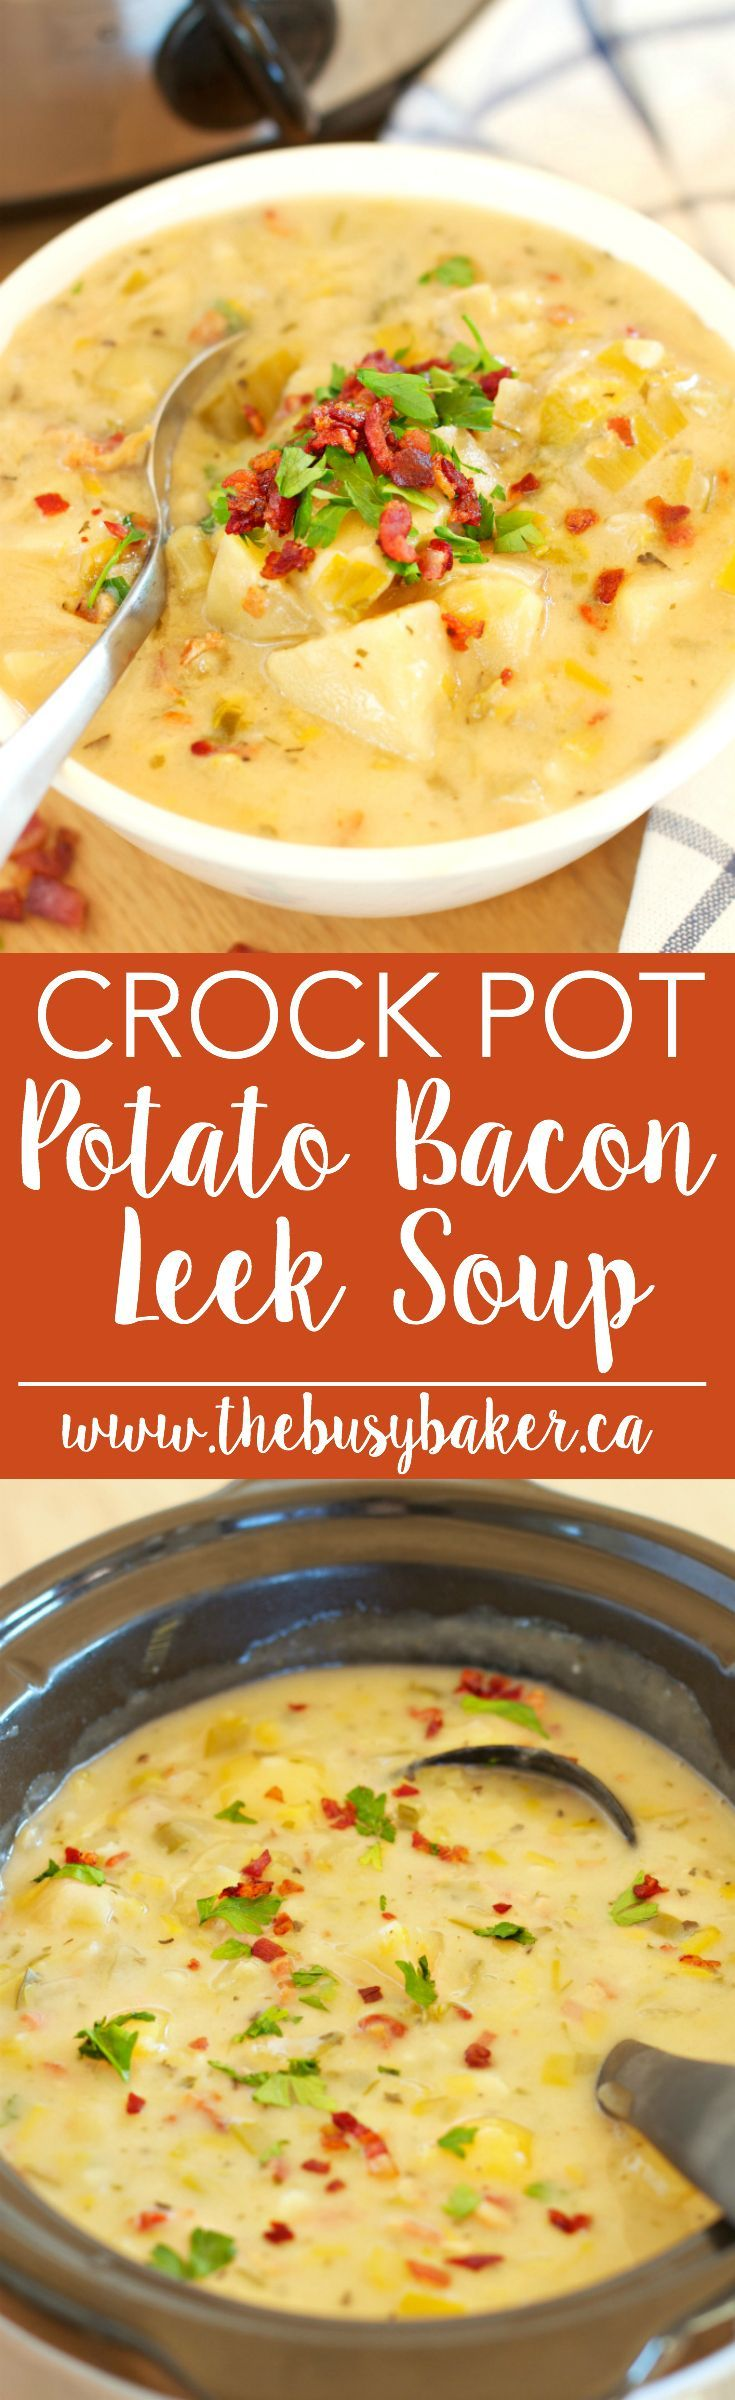 This Crock Pot Potato Bacon Leek Soup (Slow Cooker) recipe is healthy comfort food at its finest! Recipe from thebusybaker.ca